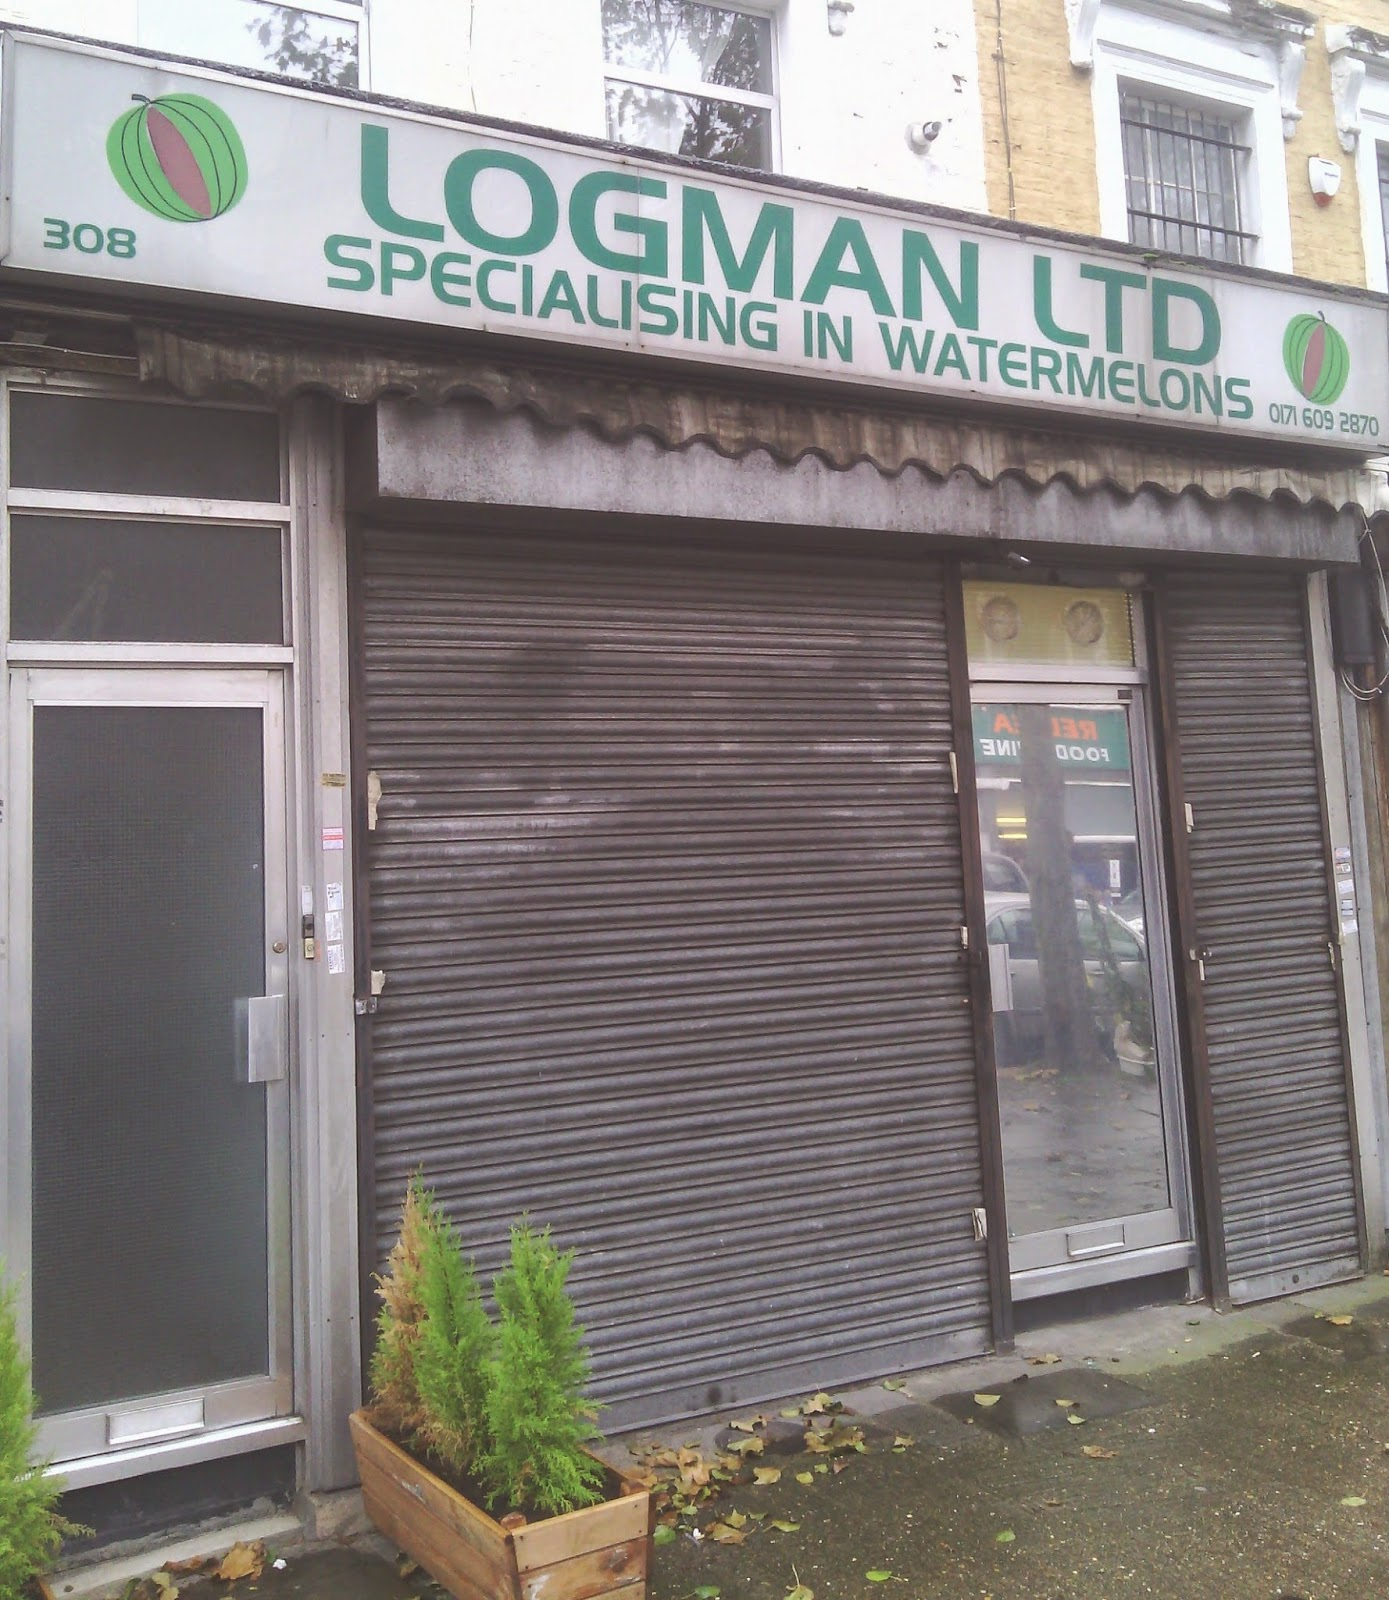 Logman Ltd - a business on Caledonian Road in London that specialises in watermelons